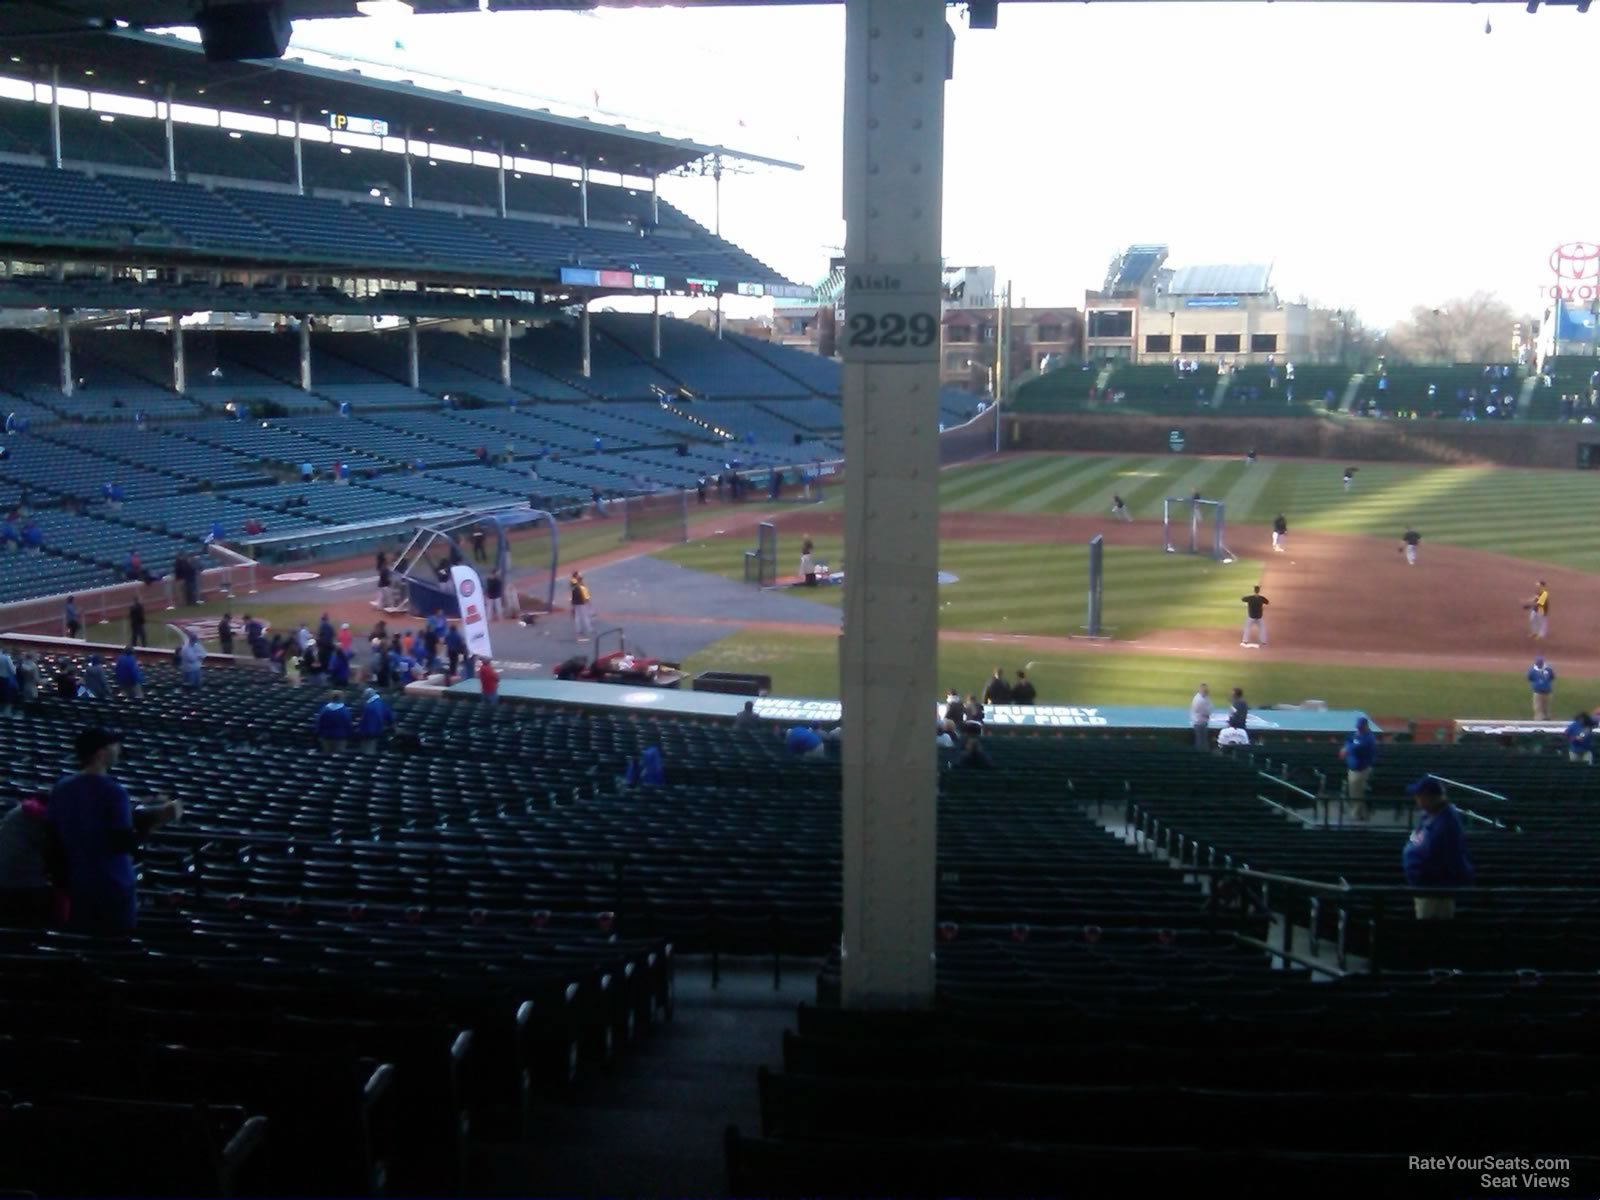 Wrigley Field Section 229 - Chicago Cubs - RateYourSeats.com